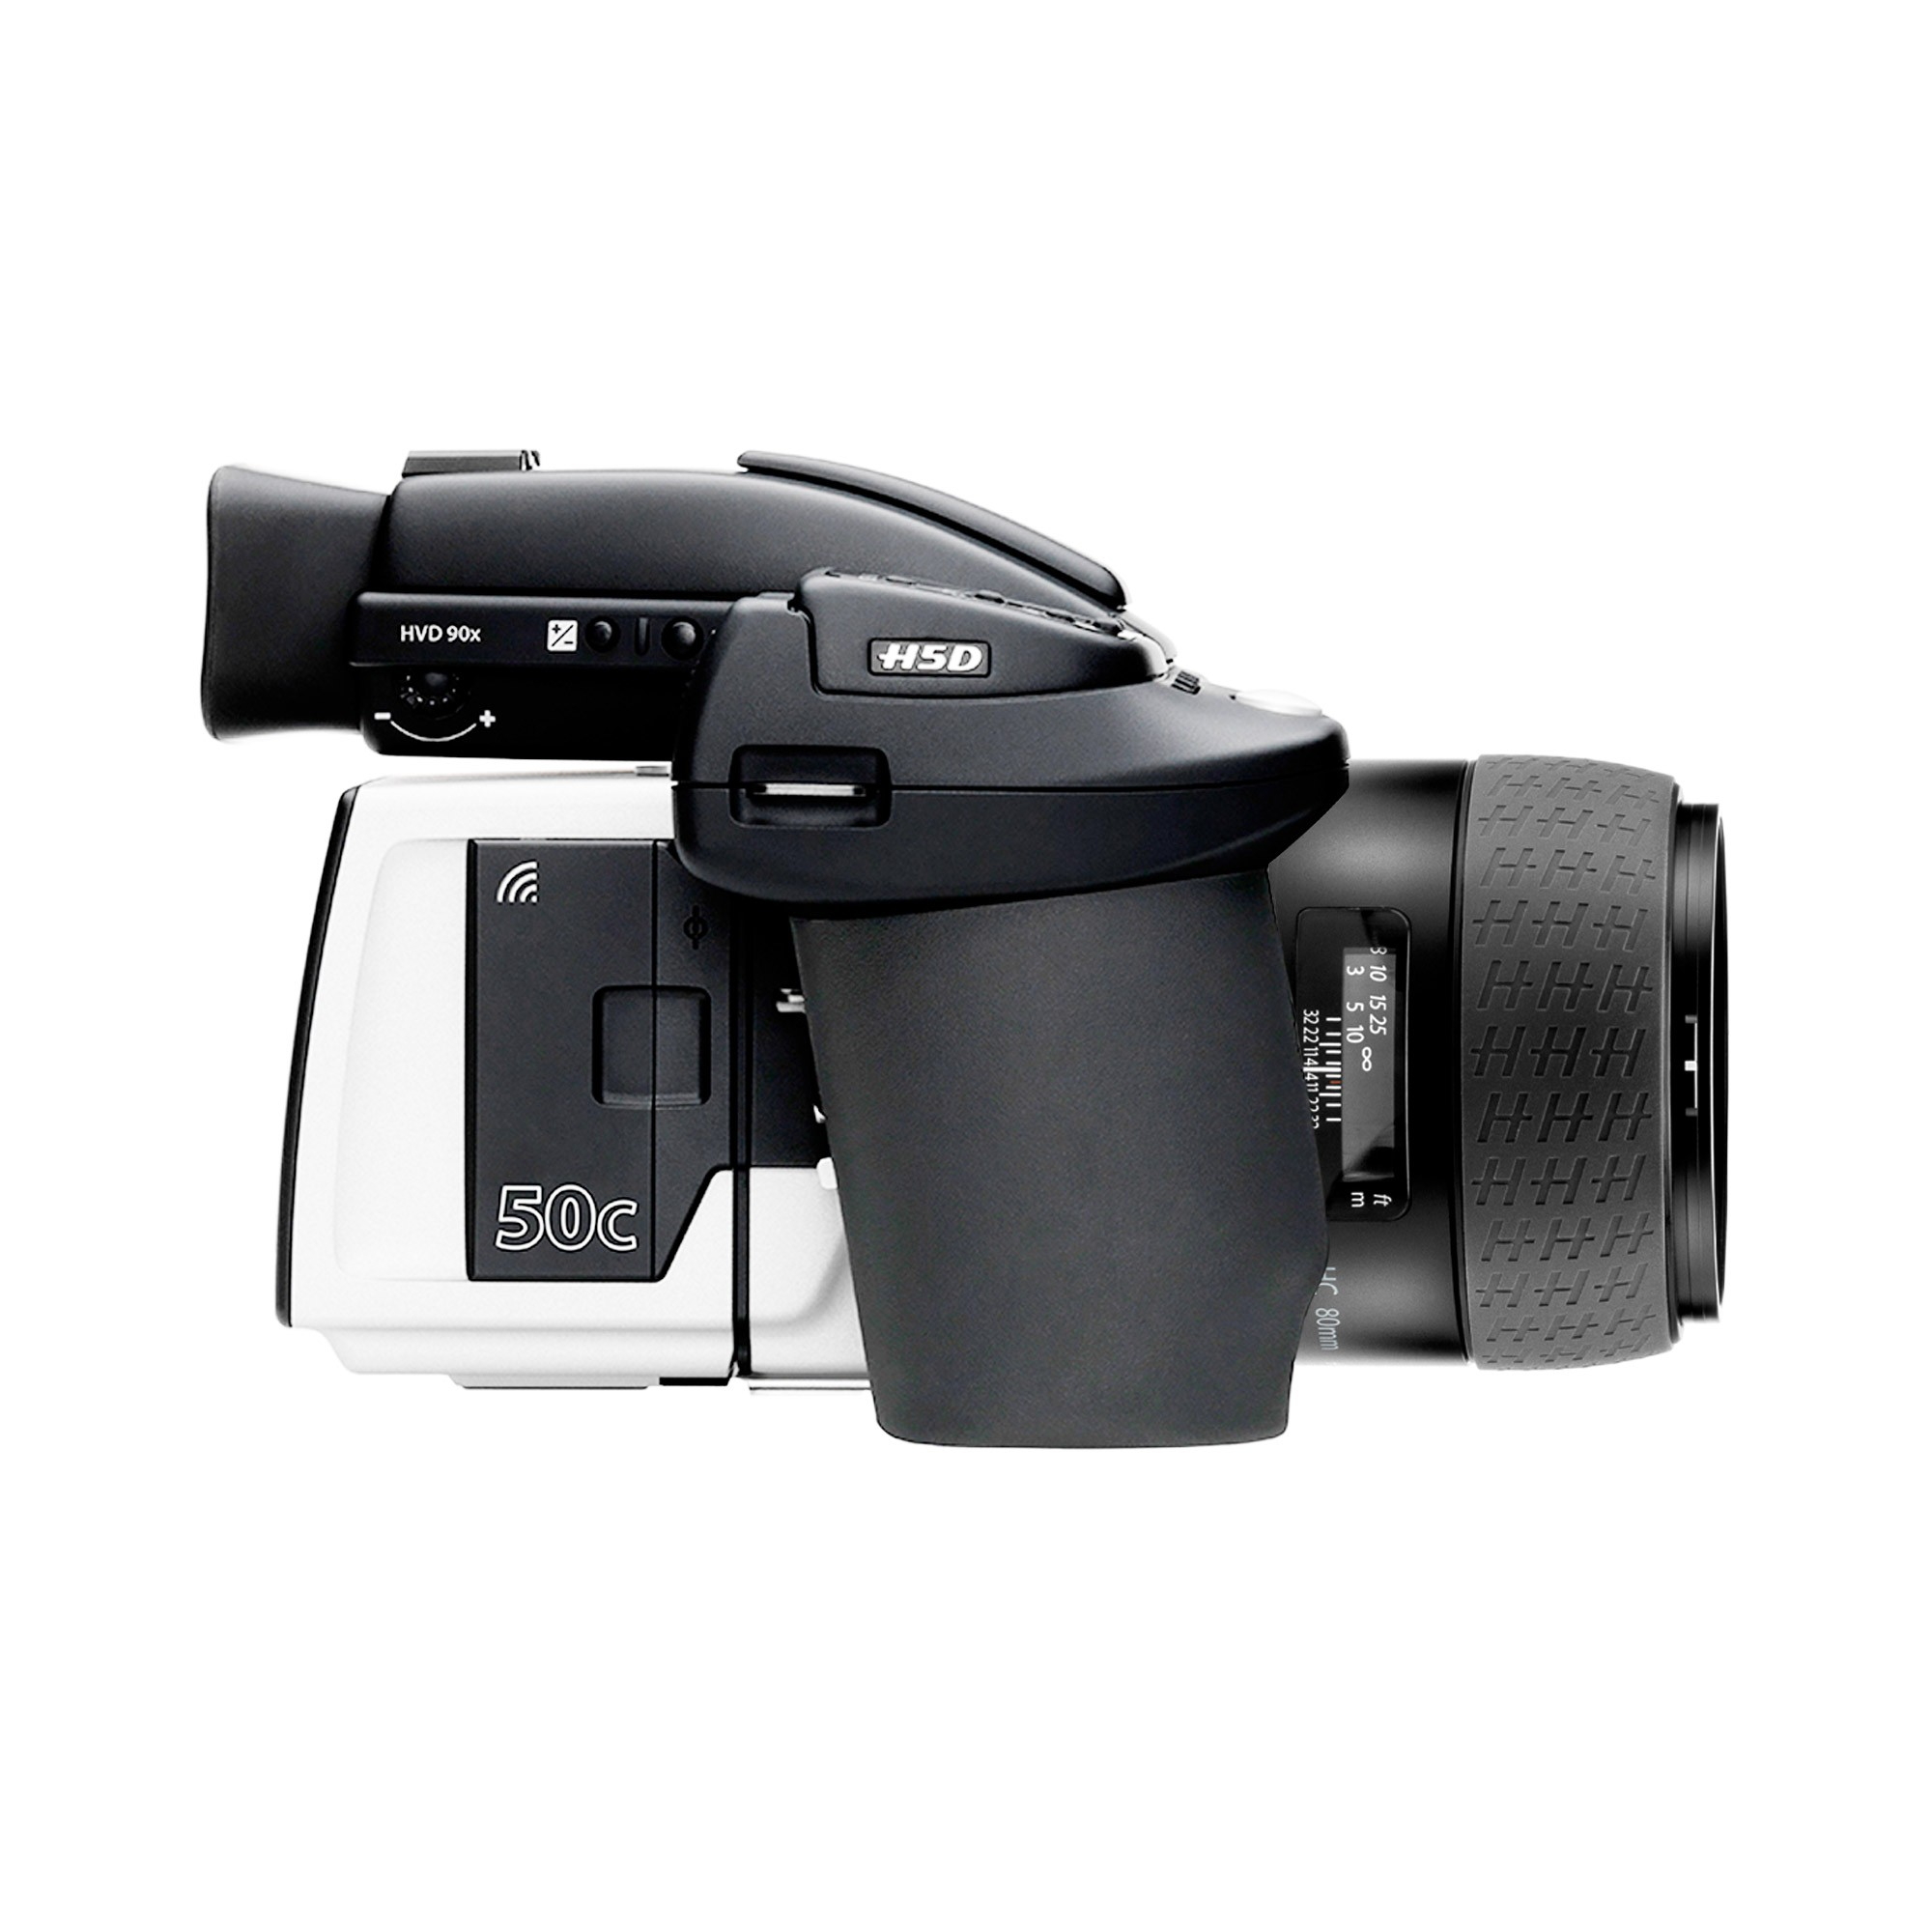 Hasselblad  available to rent / verhuur / location at 50.8 Studio • Belgïe, Belgique, Belgium, Hasselblad, Huur, Location, Louer, Photo, Rent, Rental, Strobe, Studio, Verhuur, Video